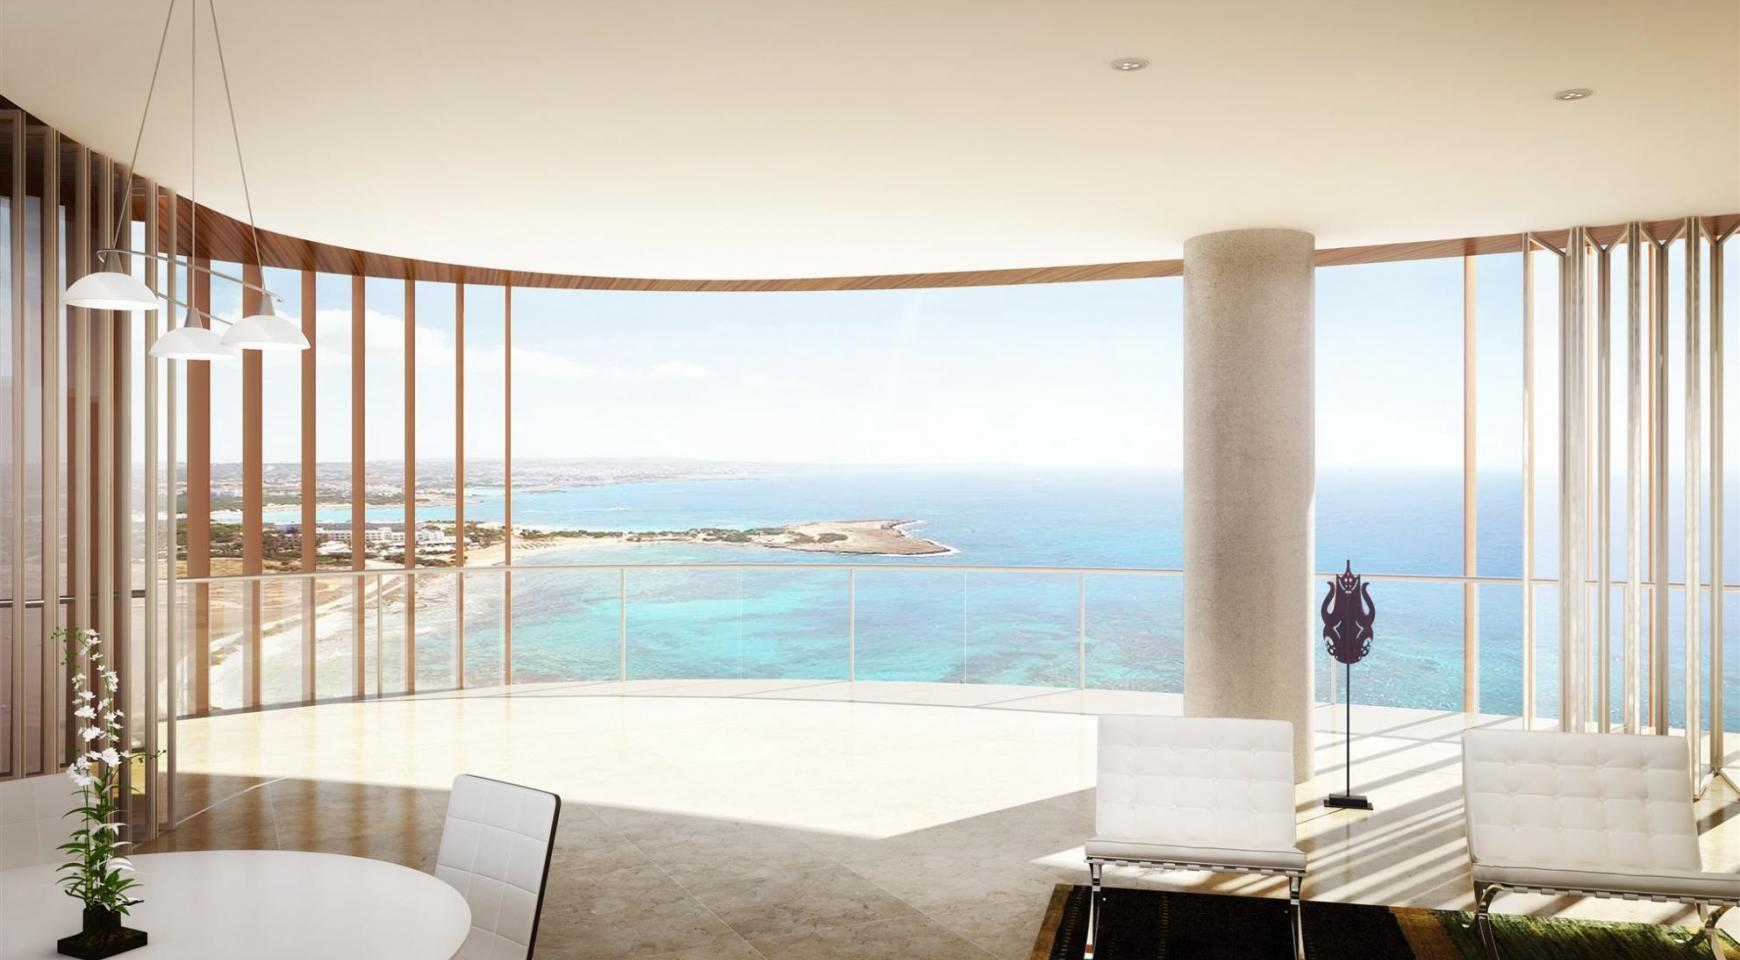 Modern 2 Bedroom Apartment in an Exclusive Project by the Sea - 22